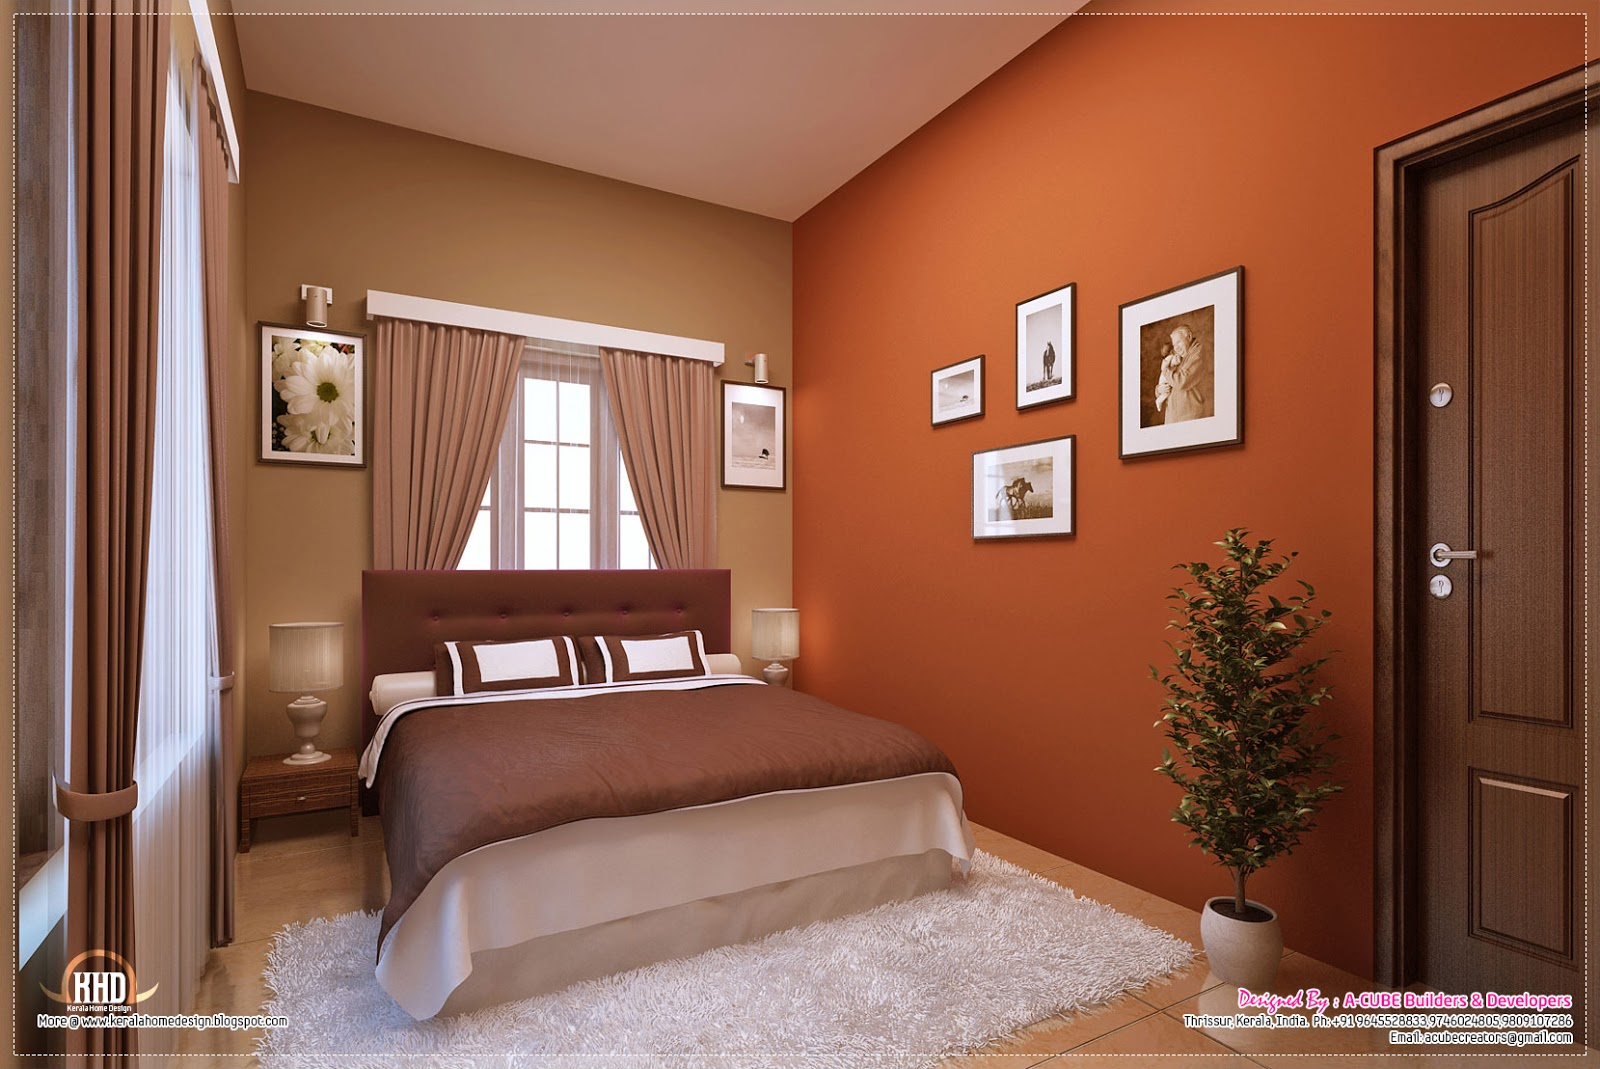 Awesome interior decoration ideas kerala home design and - Home interior design images india ...